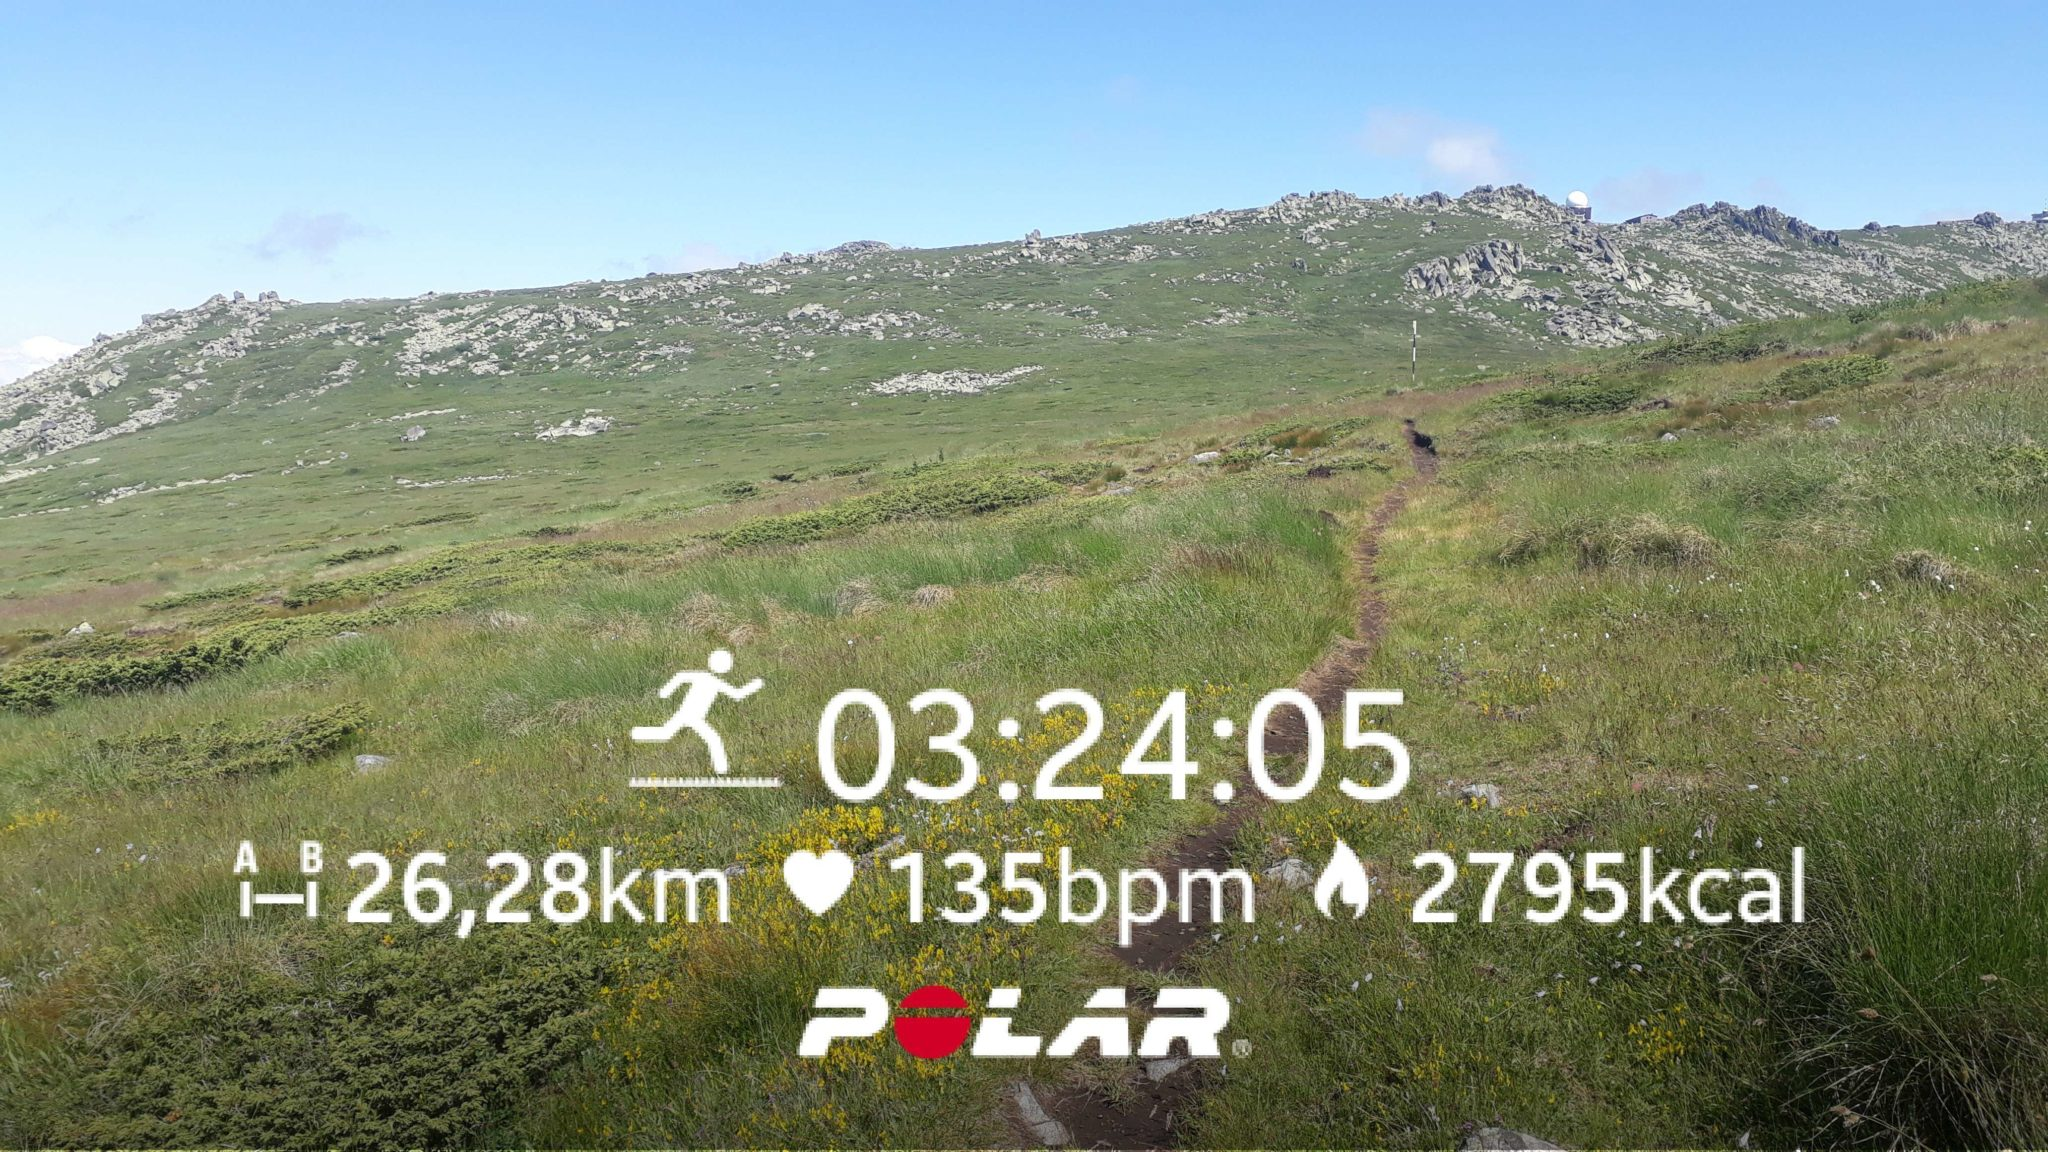 A typical trail running day at Vitosha mountain